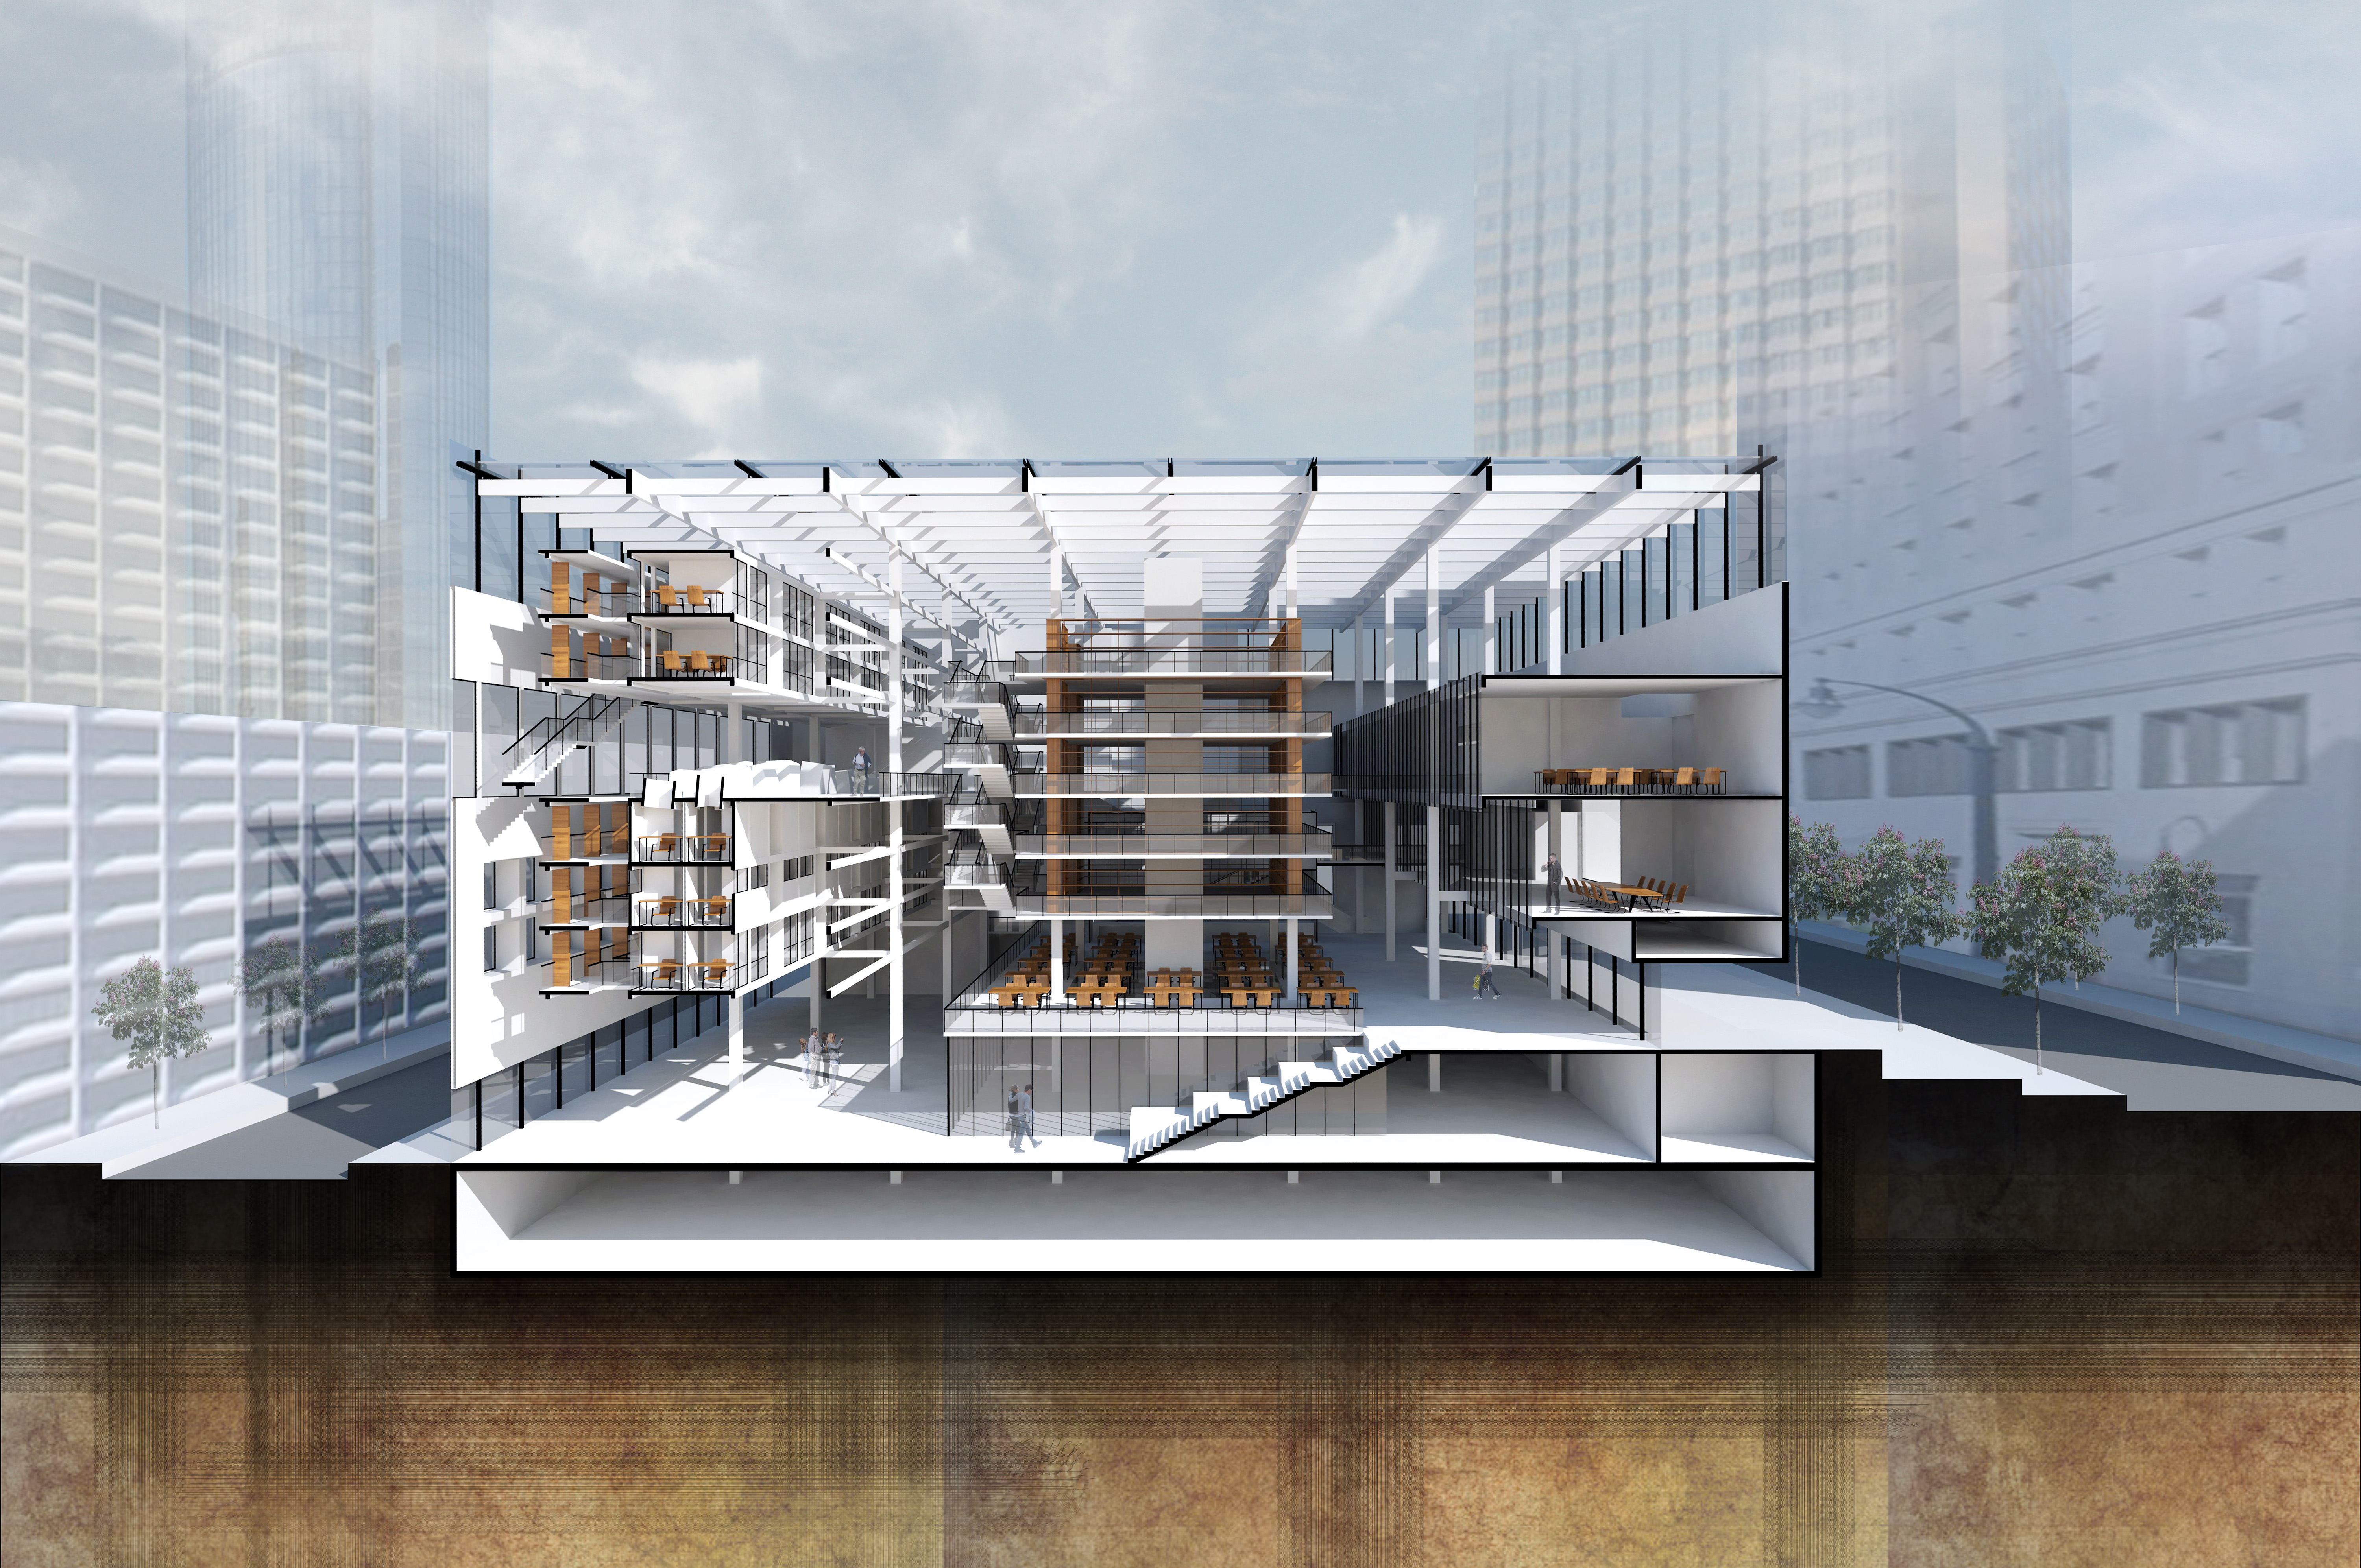 A rendering of a new library design.